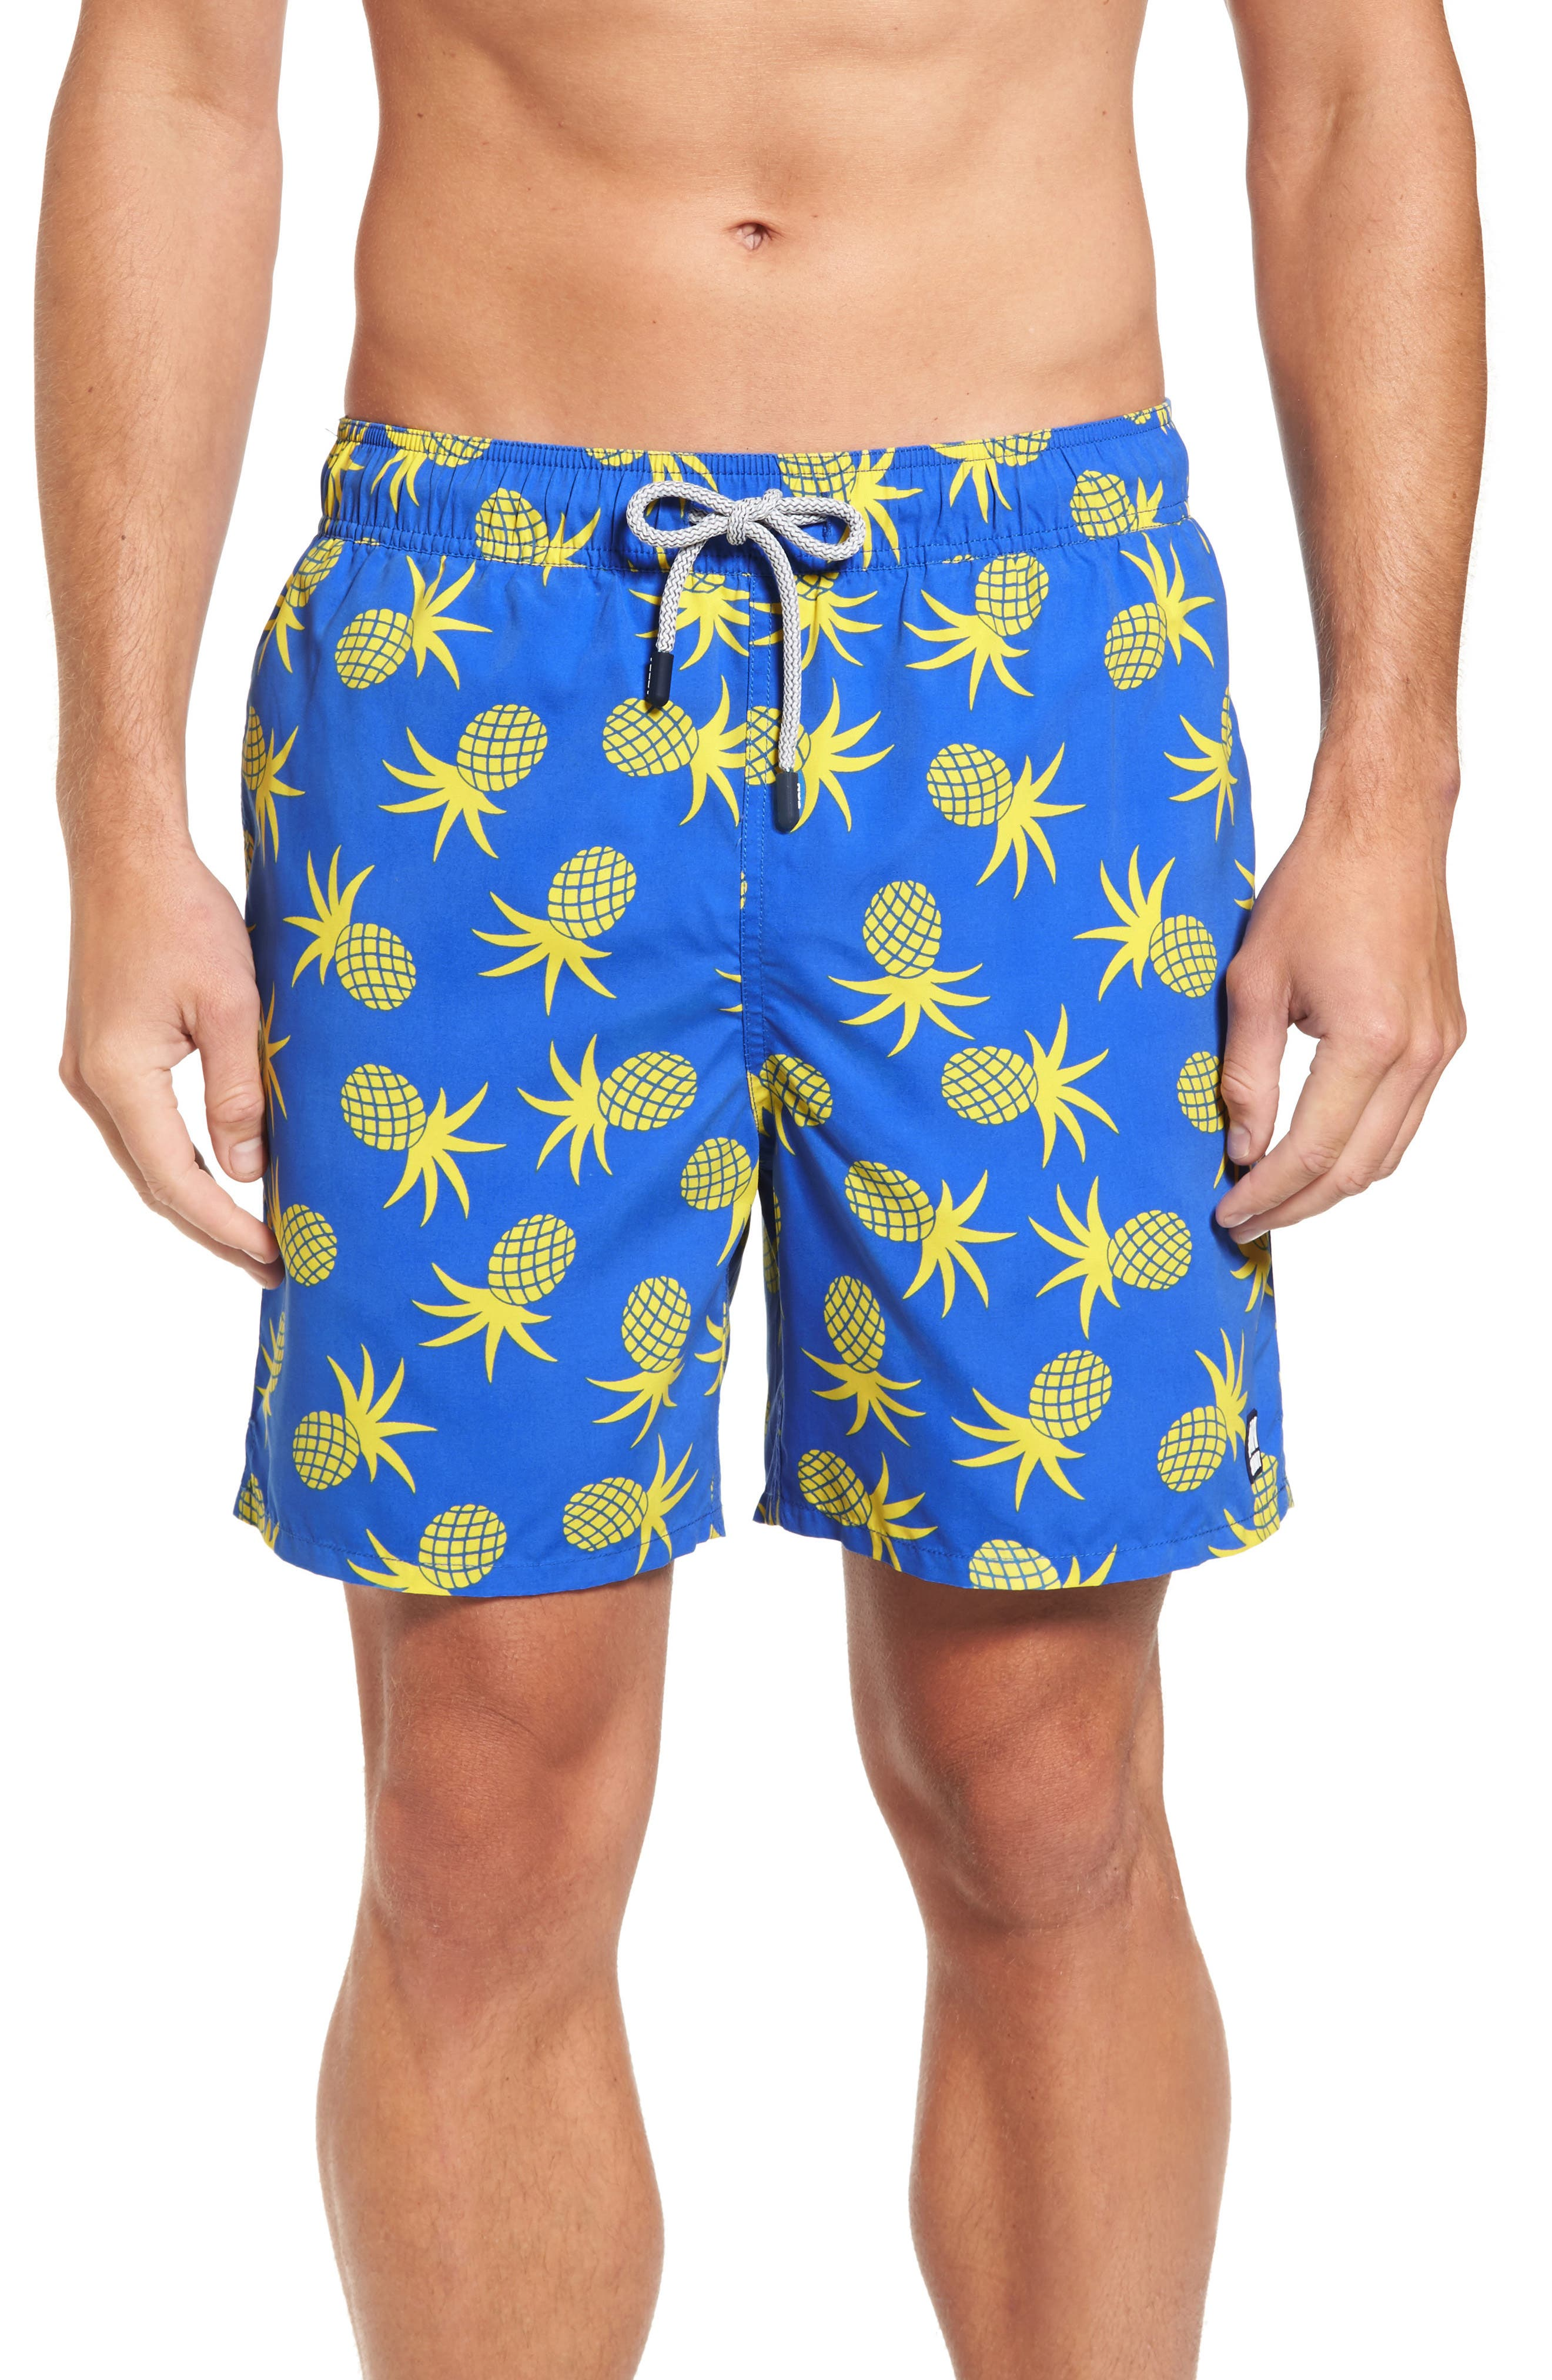 Alternate Image 1 Selected - Tom & Teddy Pineapple Swim Trunks